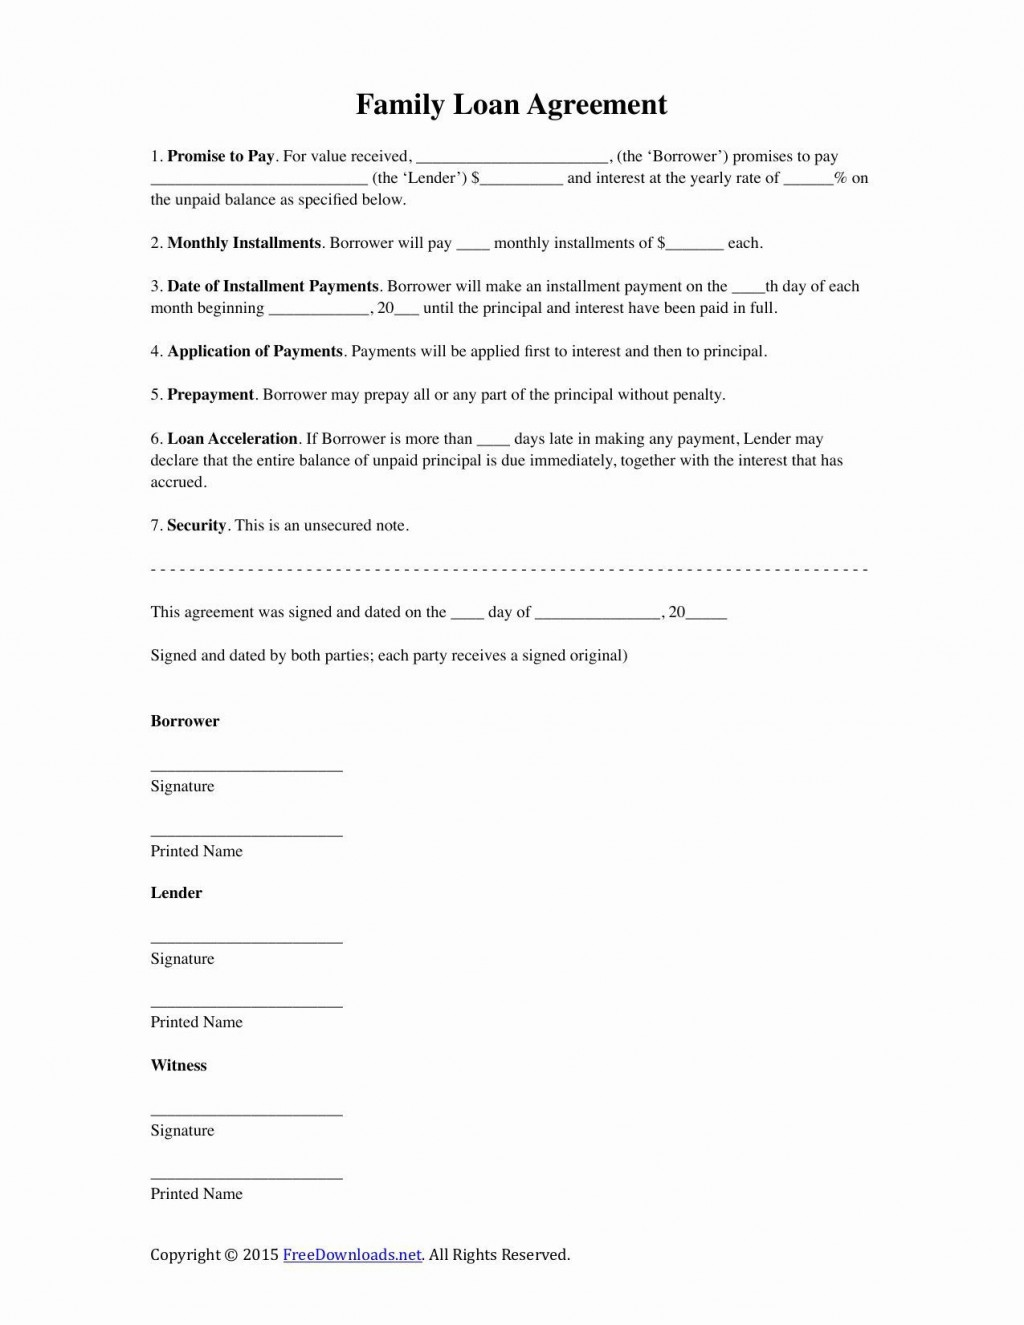 000 Wonderful Family Loan Agreement Format India Idea Large